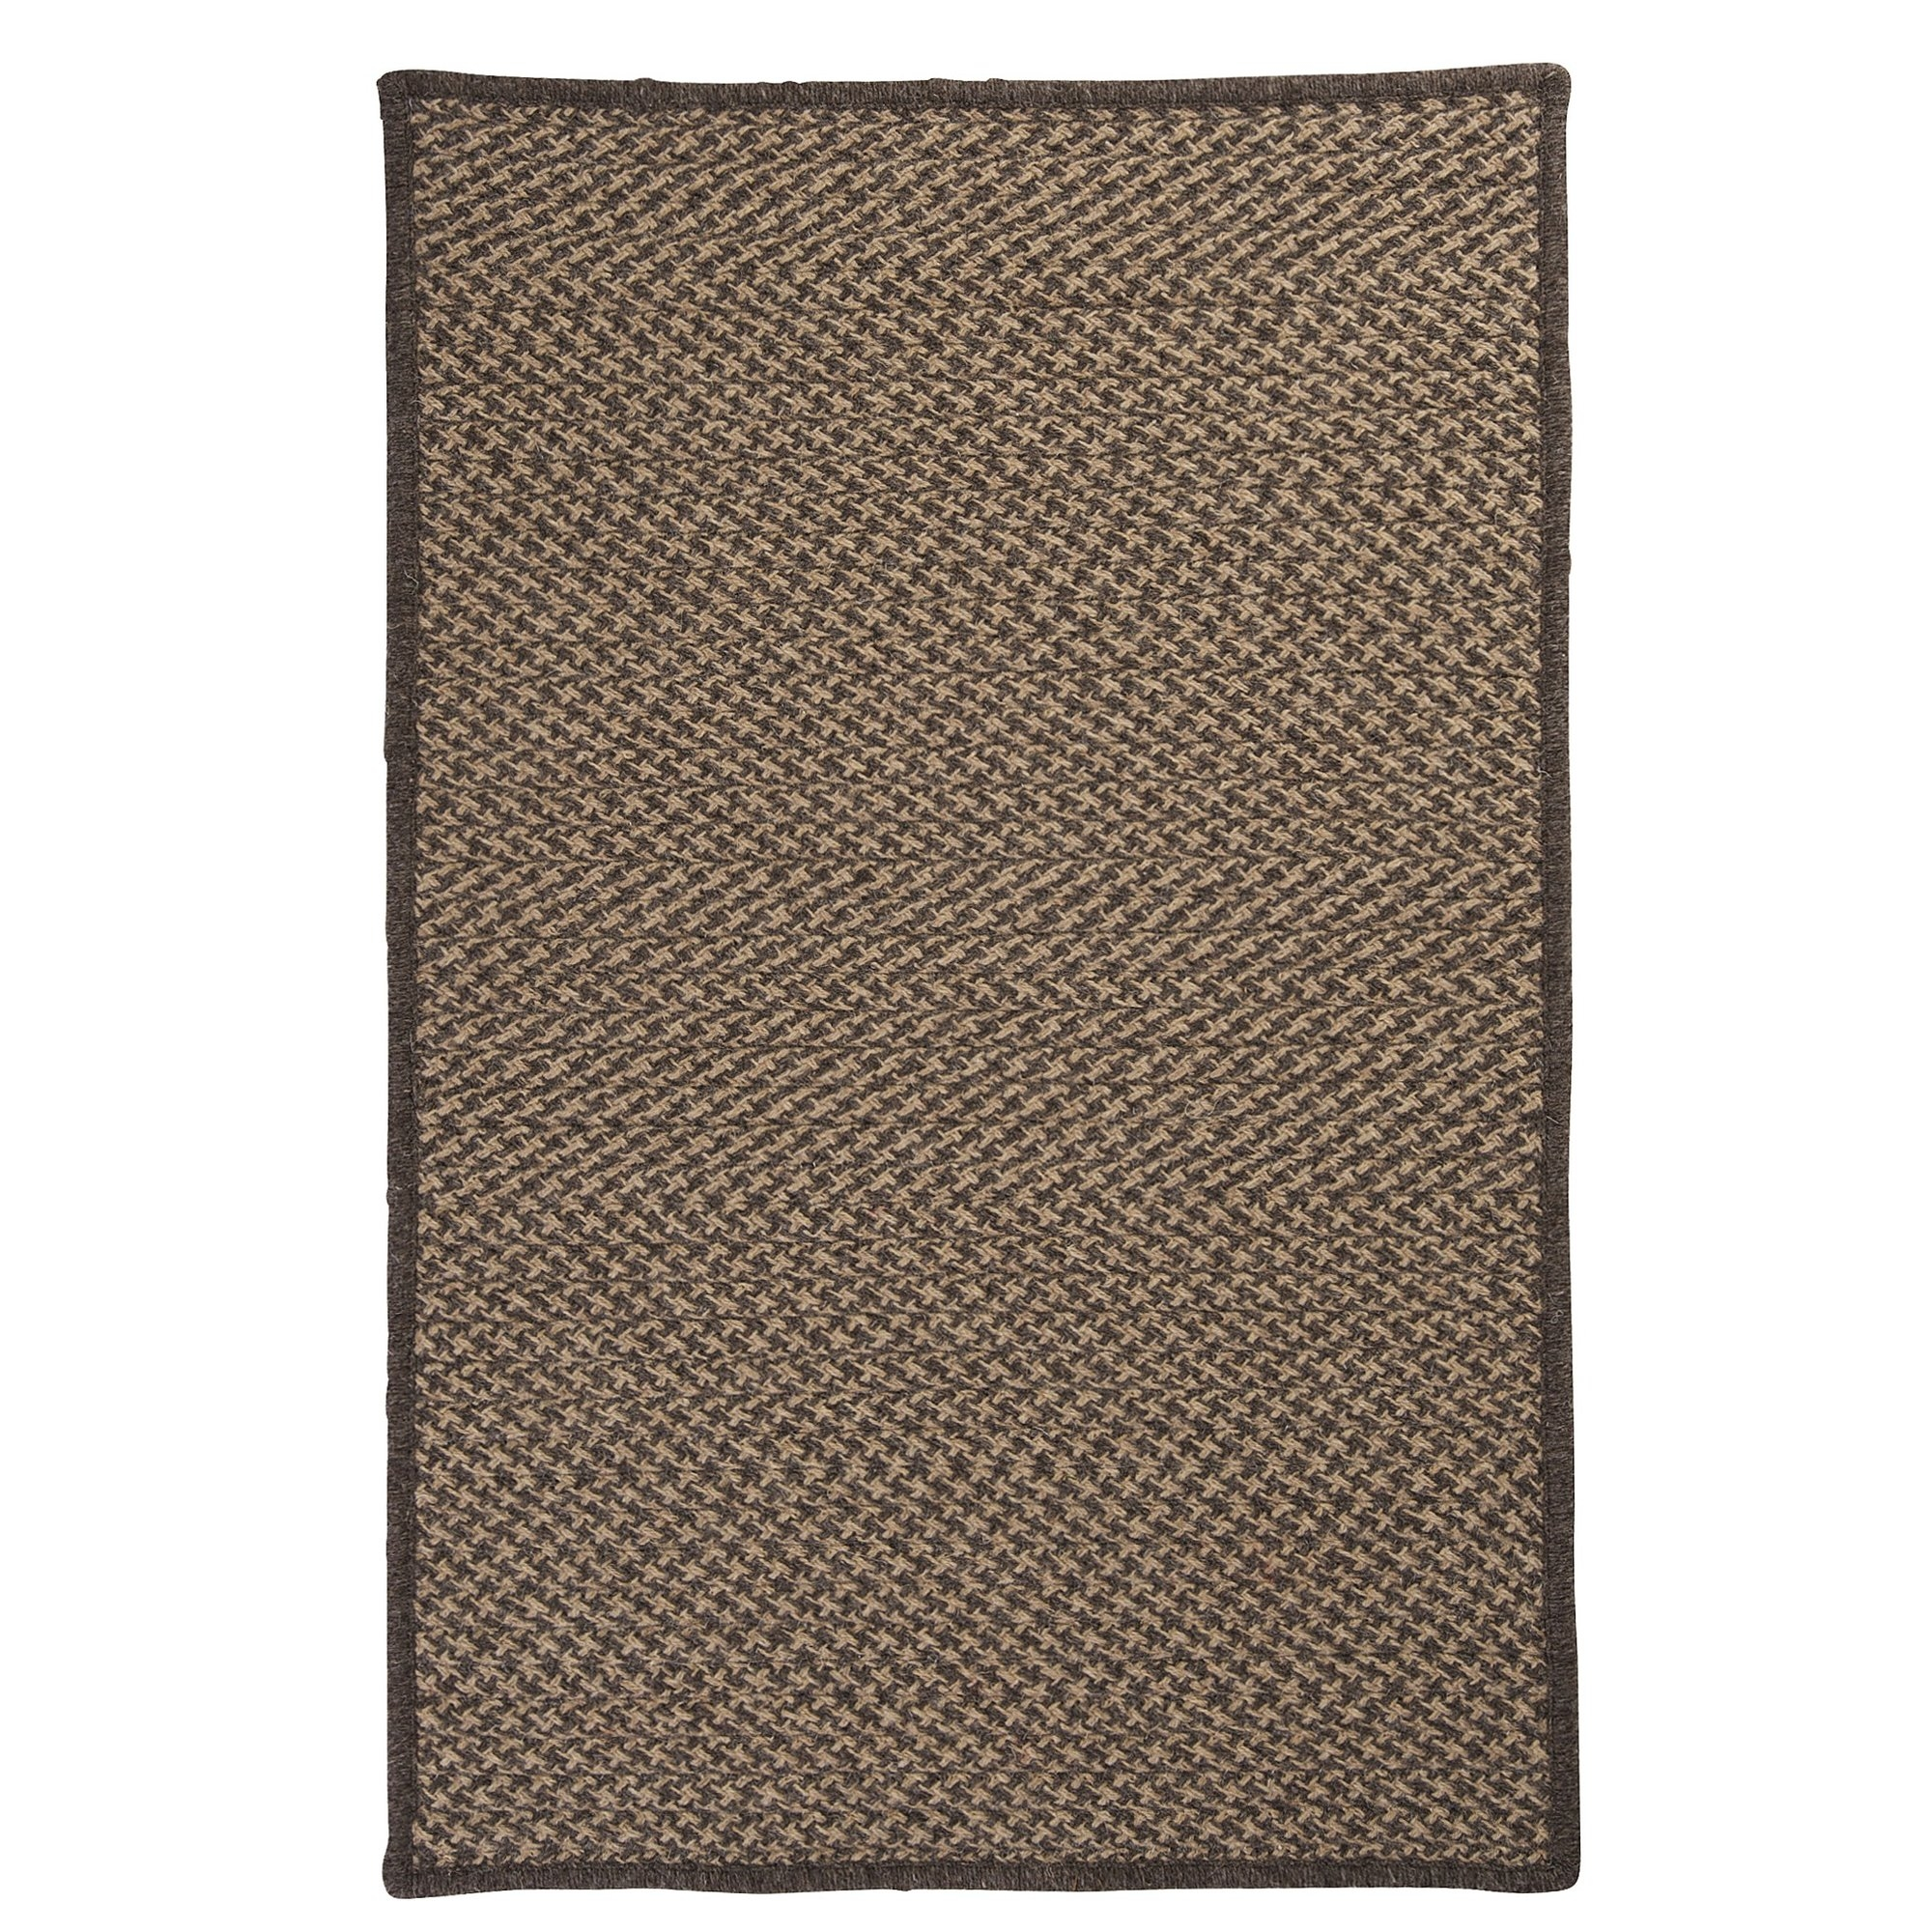 Colonial Mills Natural Wool Houndstooth Braided Caramel Area Rug Intended For Natural Wool Area Rugs (#2 of 15)